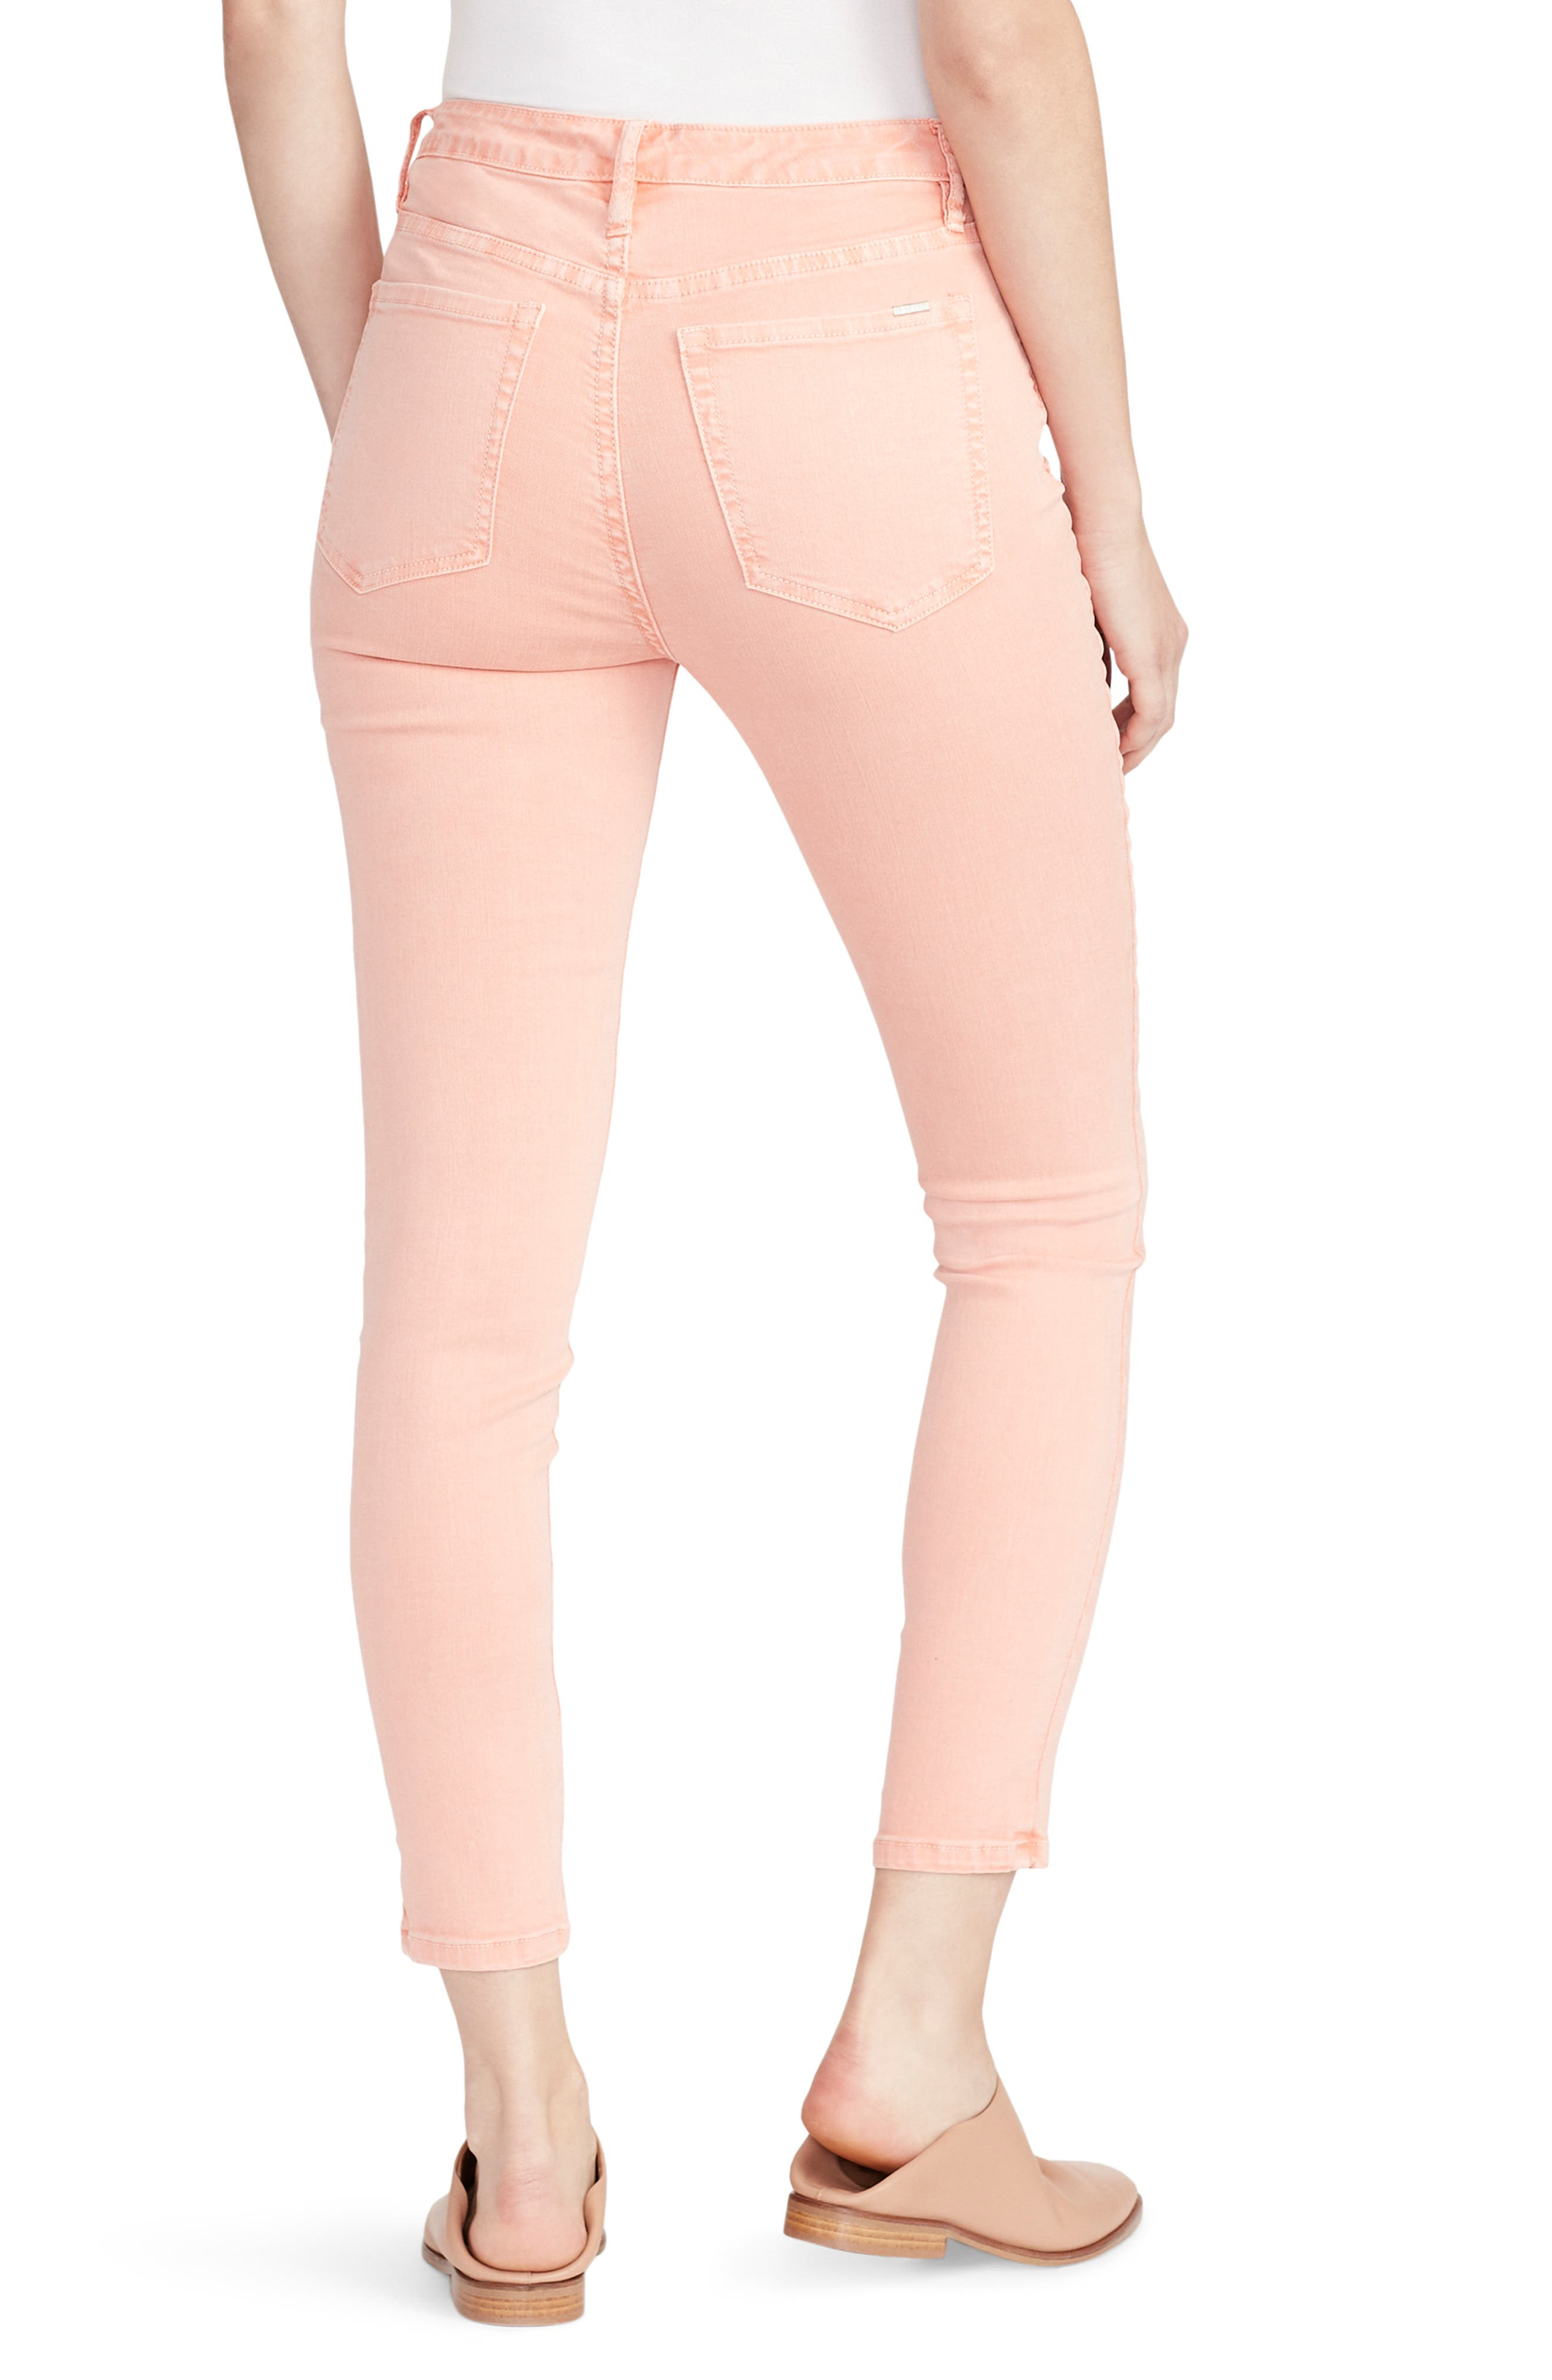 ELLA MOSS, High Waist Ankle Skinny Jeans, Alternate thumbnail 2, color, PEACH BUD